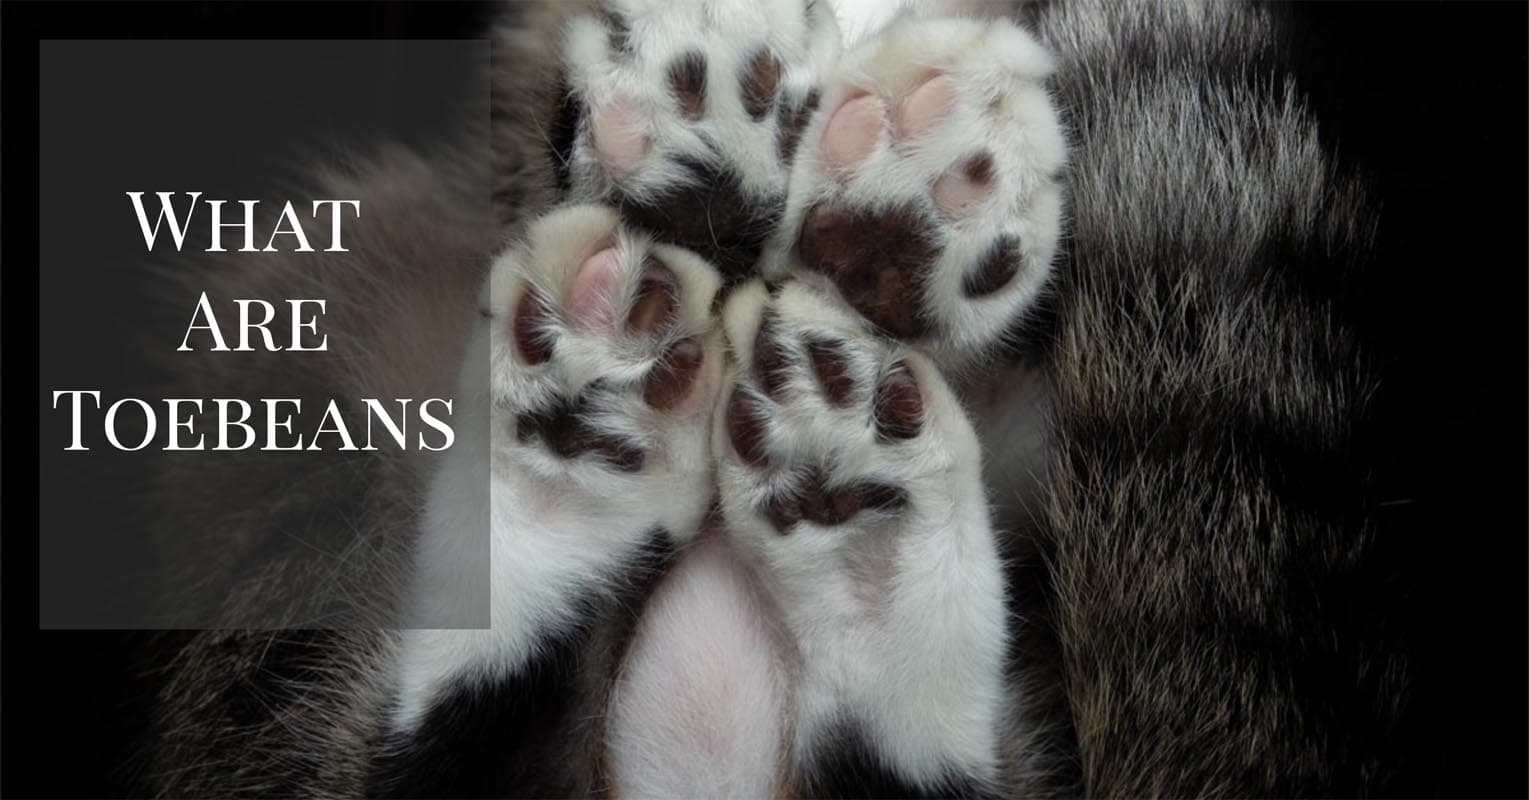 What are toebeans?